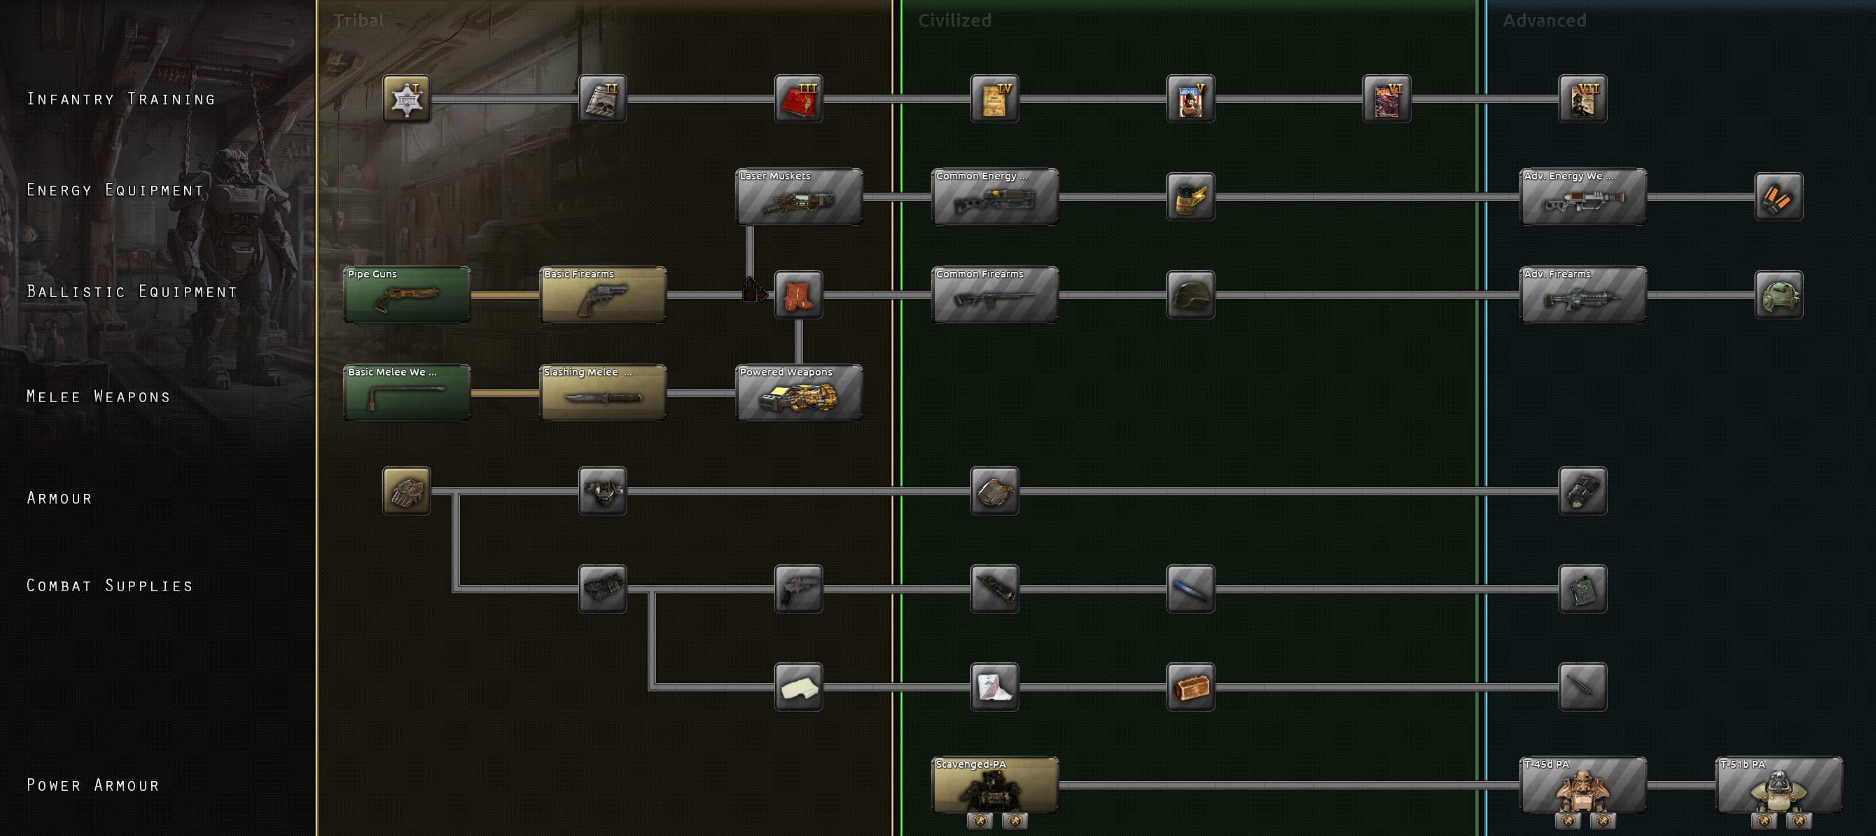 Tech Tree image - Old World Blues mod for Hearts of Iron IV